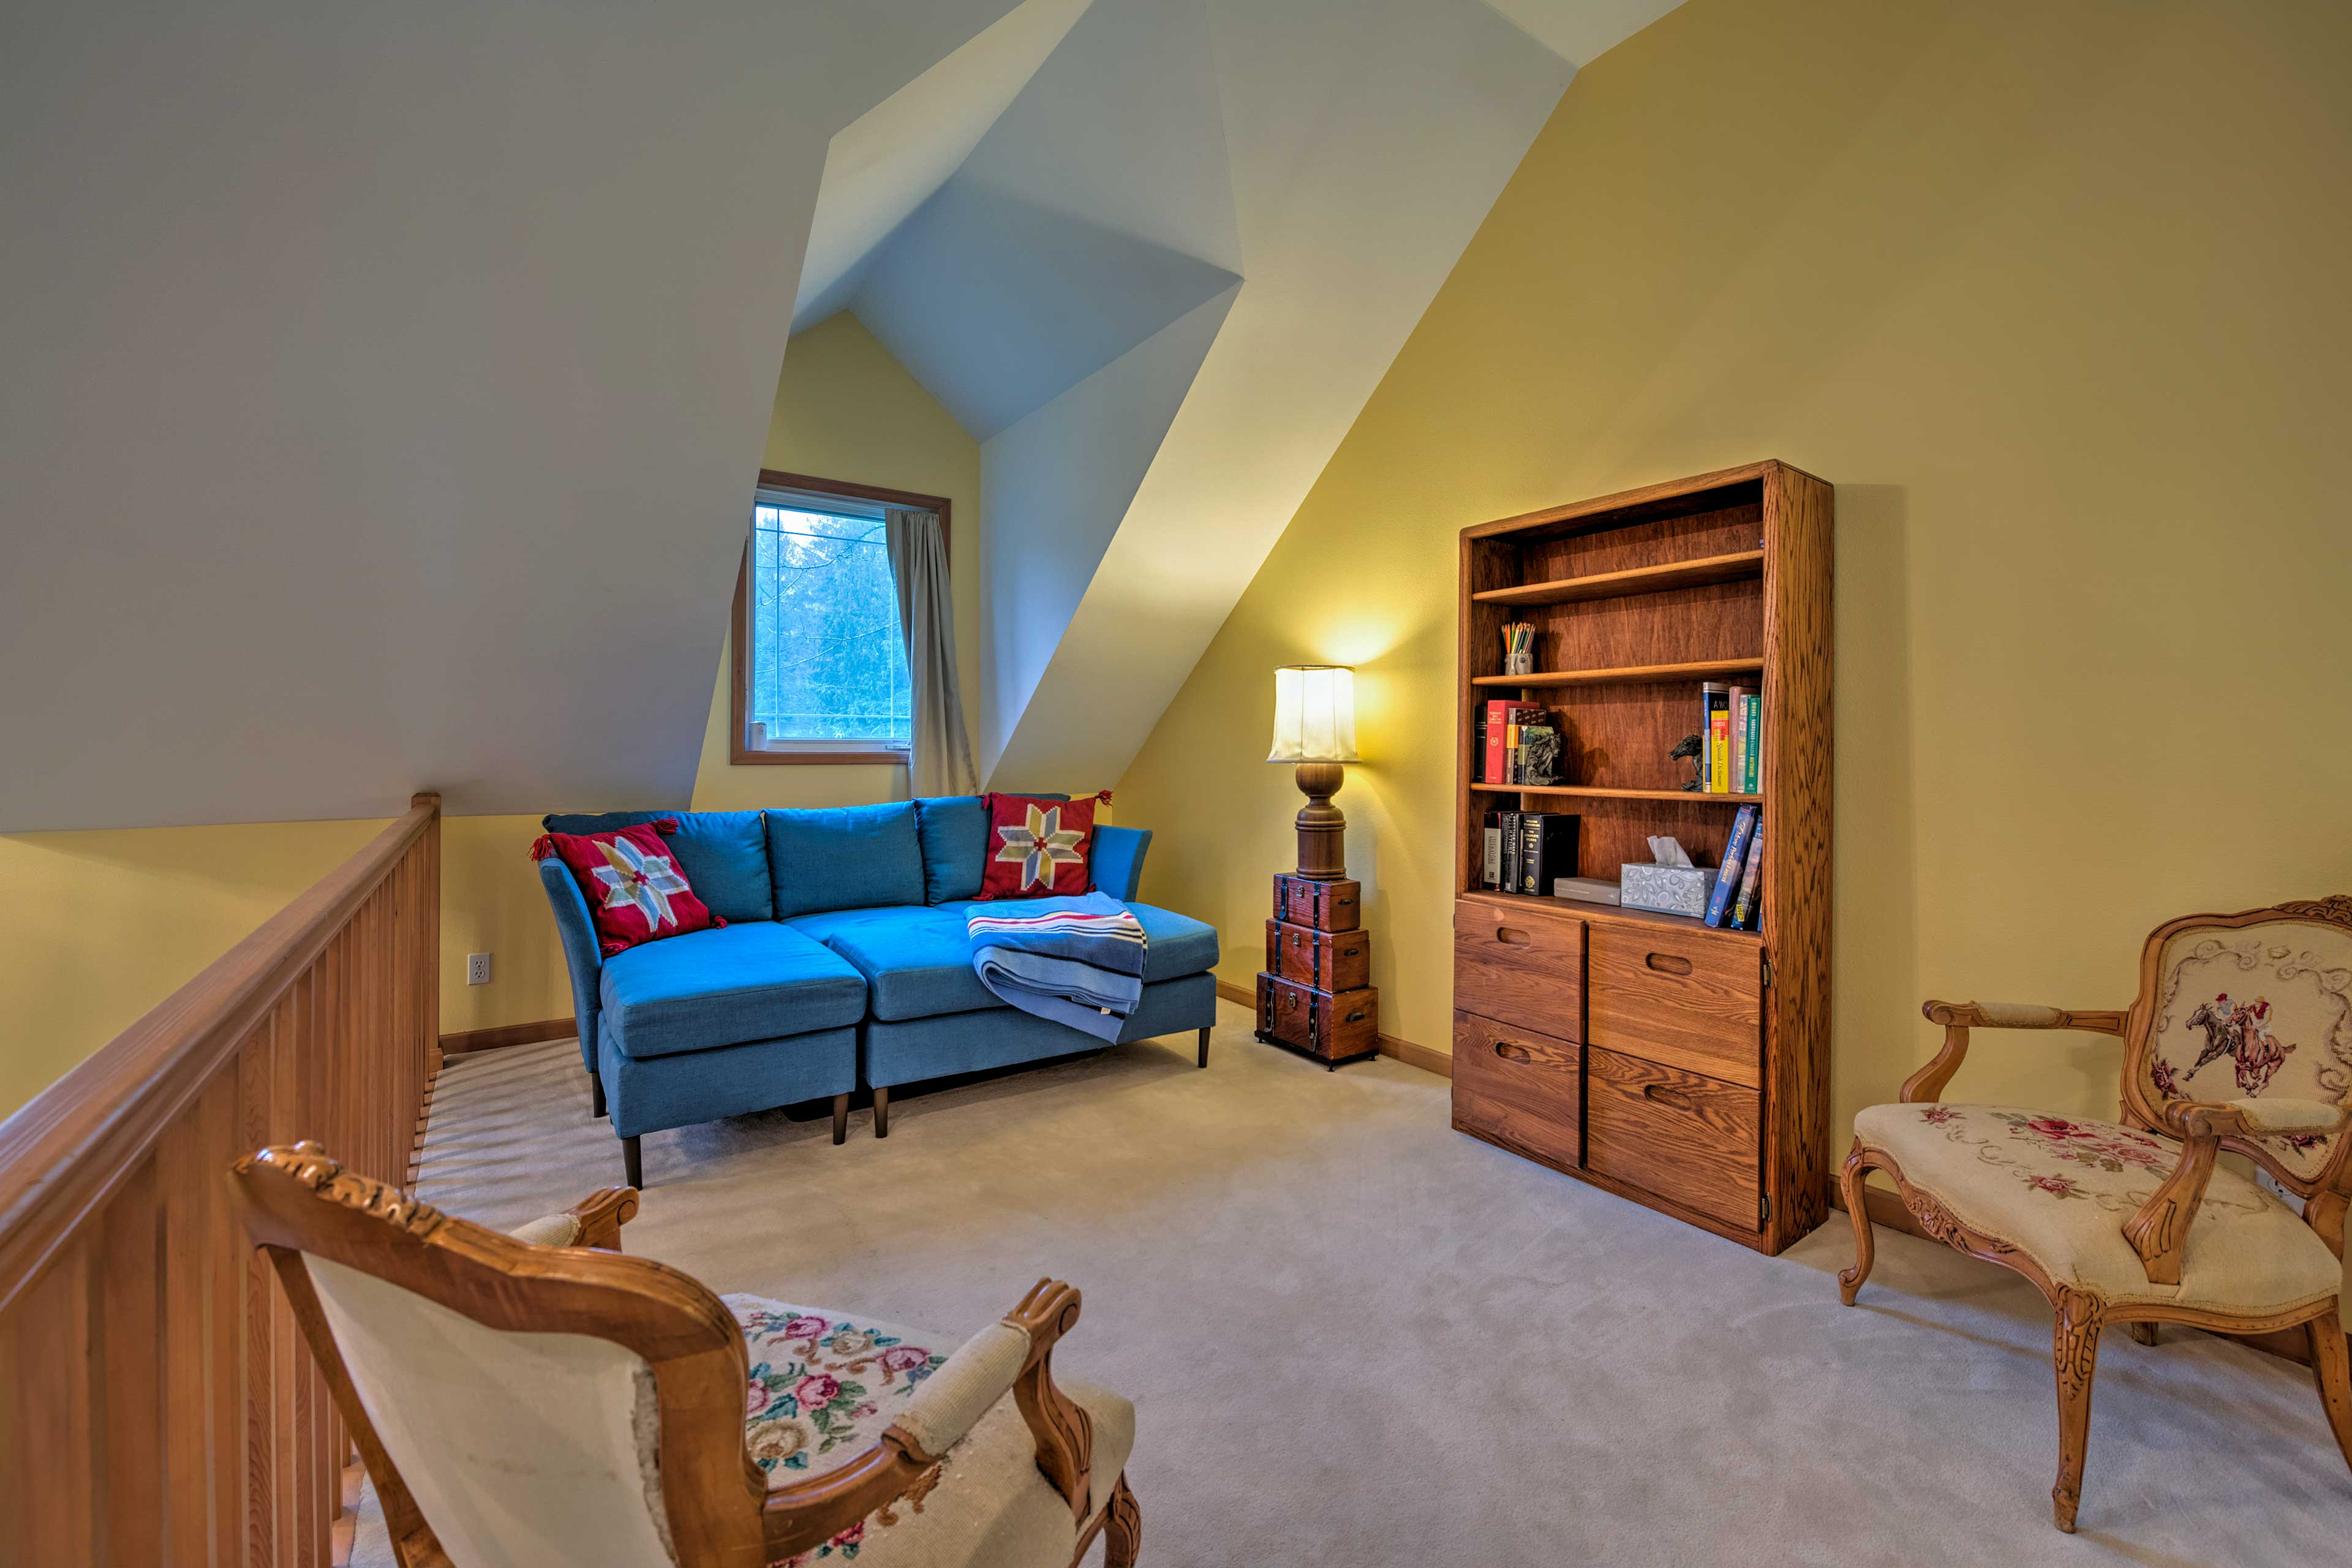 An additional twin bed can be found upstairs.